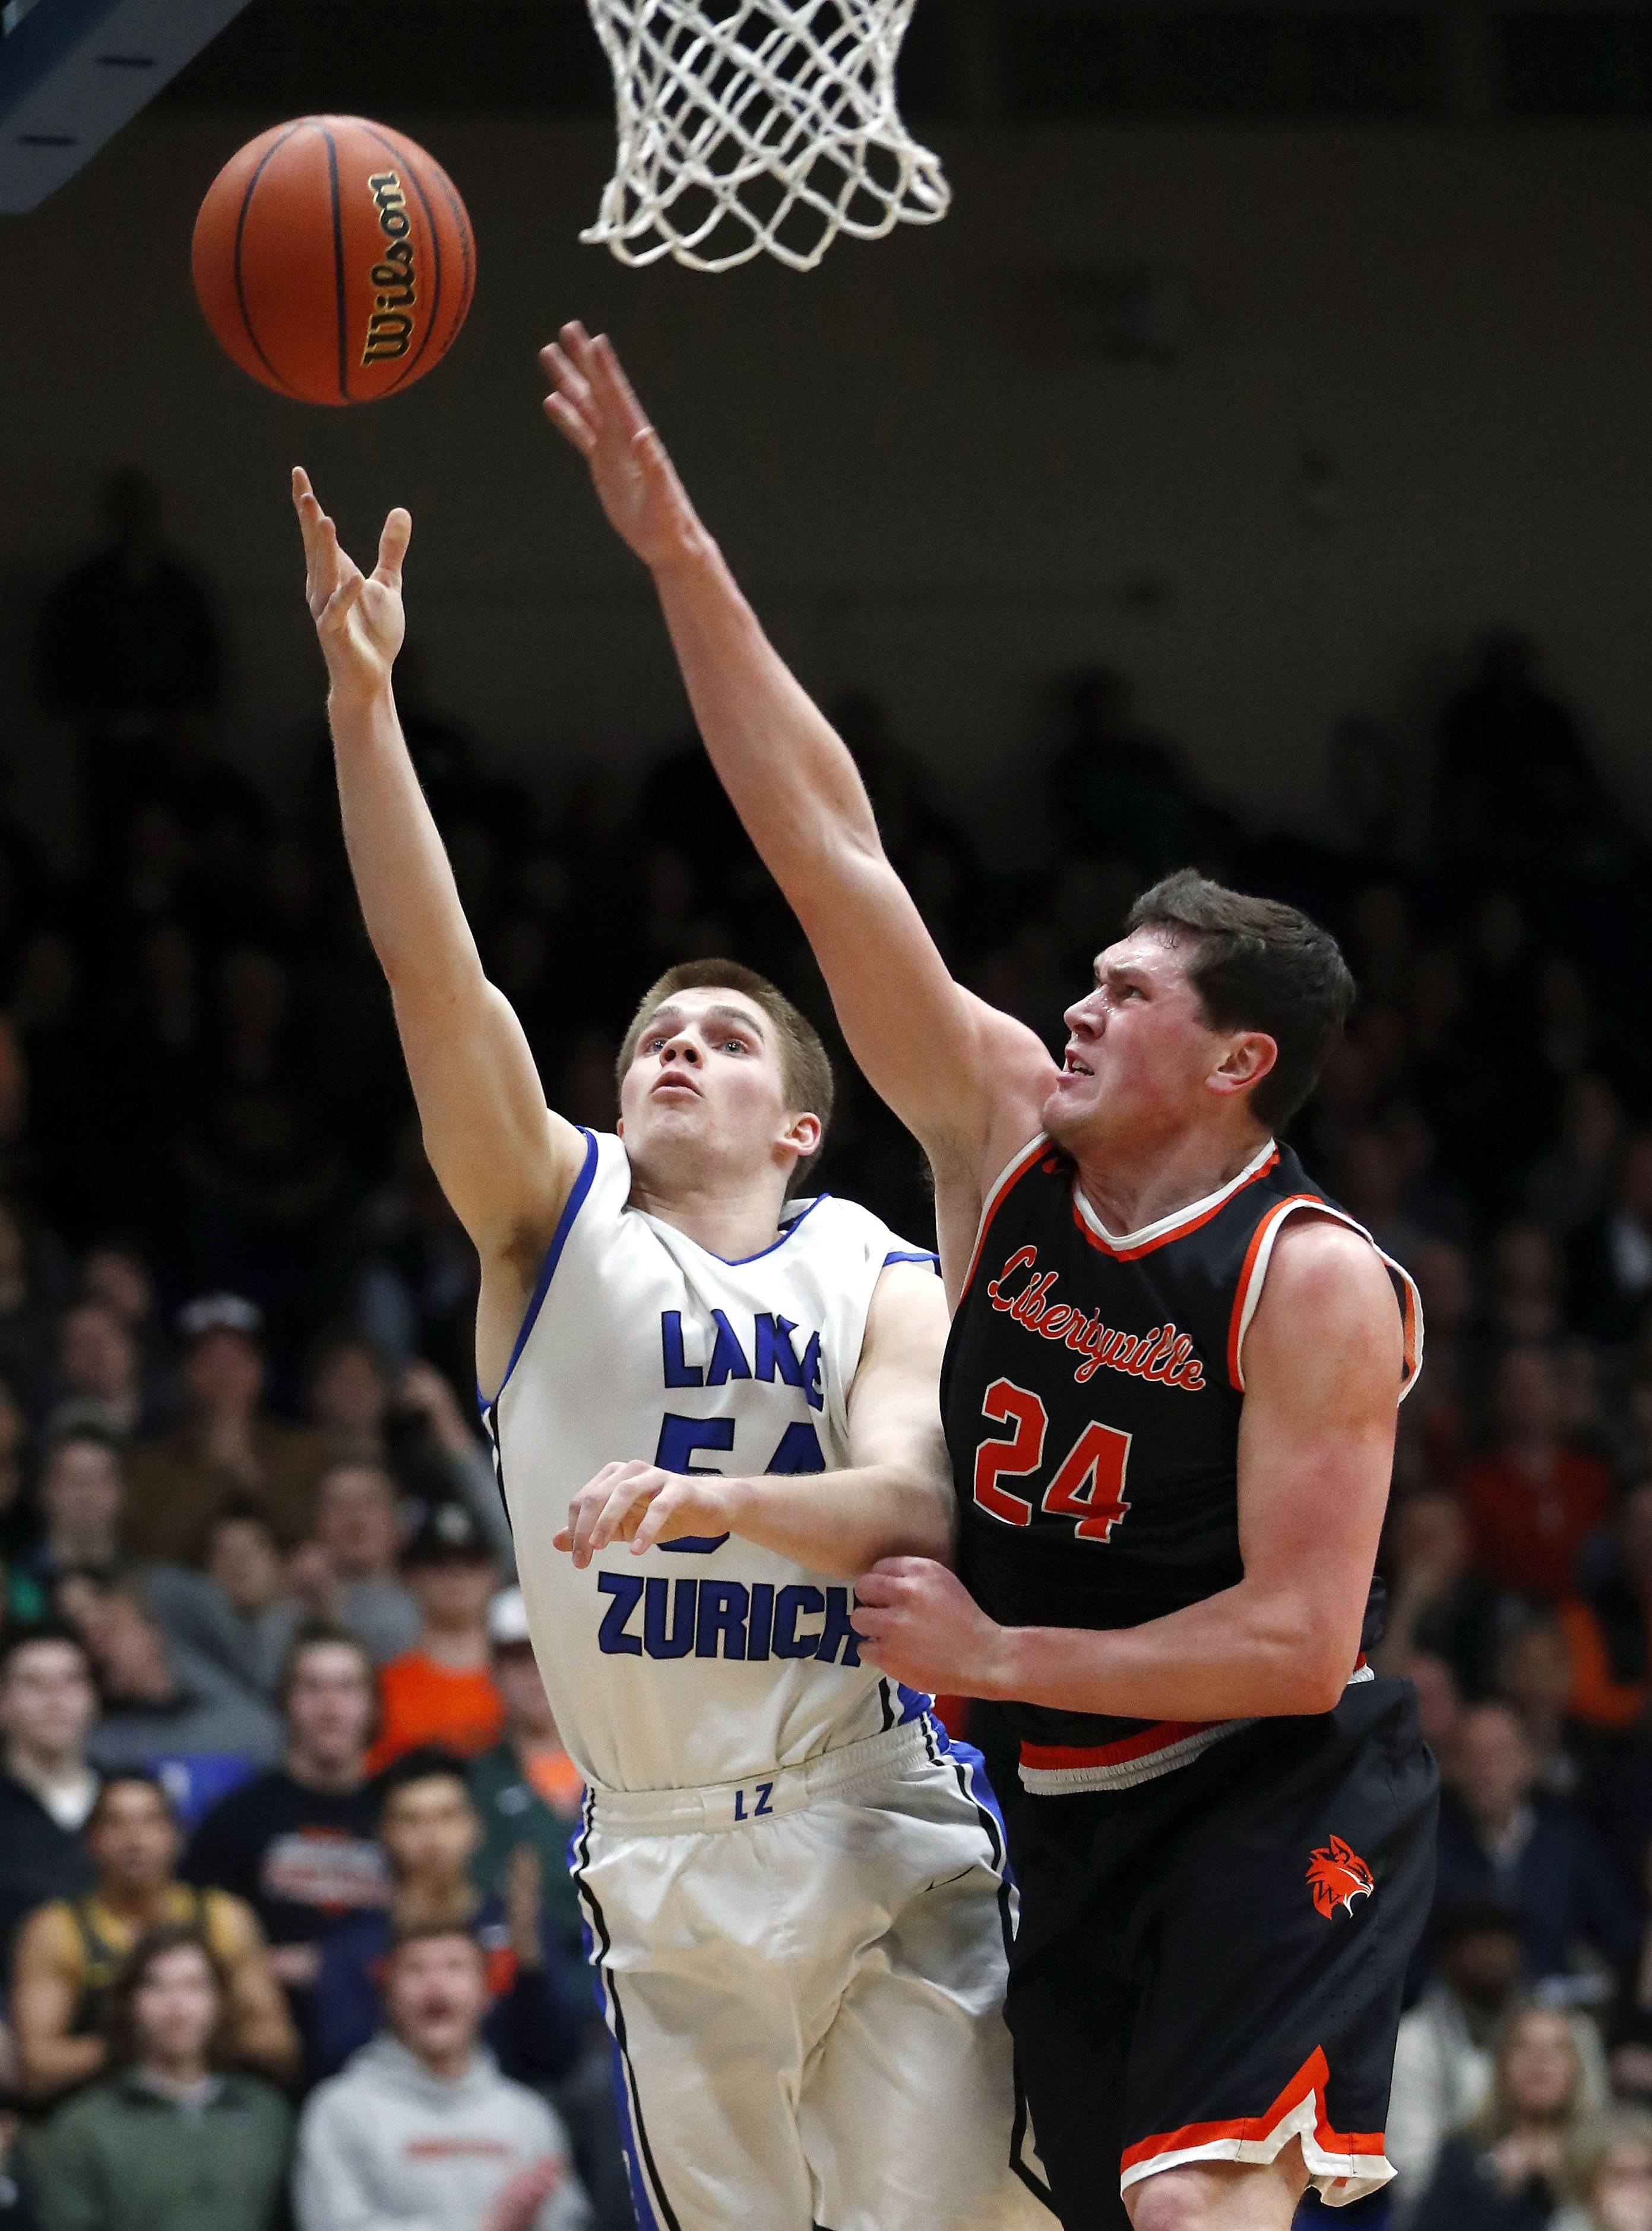 Lake Zurich's Peter DiCerbo, left, drives on Libertyville's Brendan Cook during the Class 4A sectional semifinal at Lake Zurich High School on Tuesday.